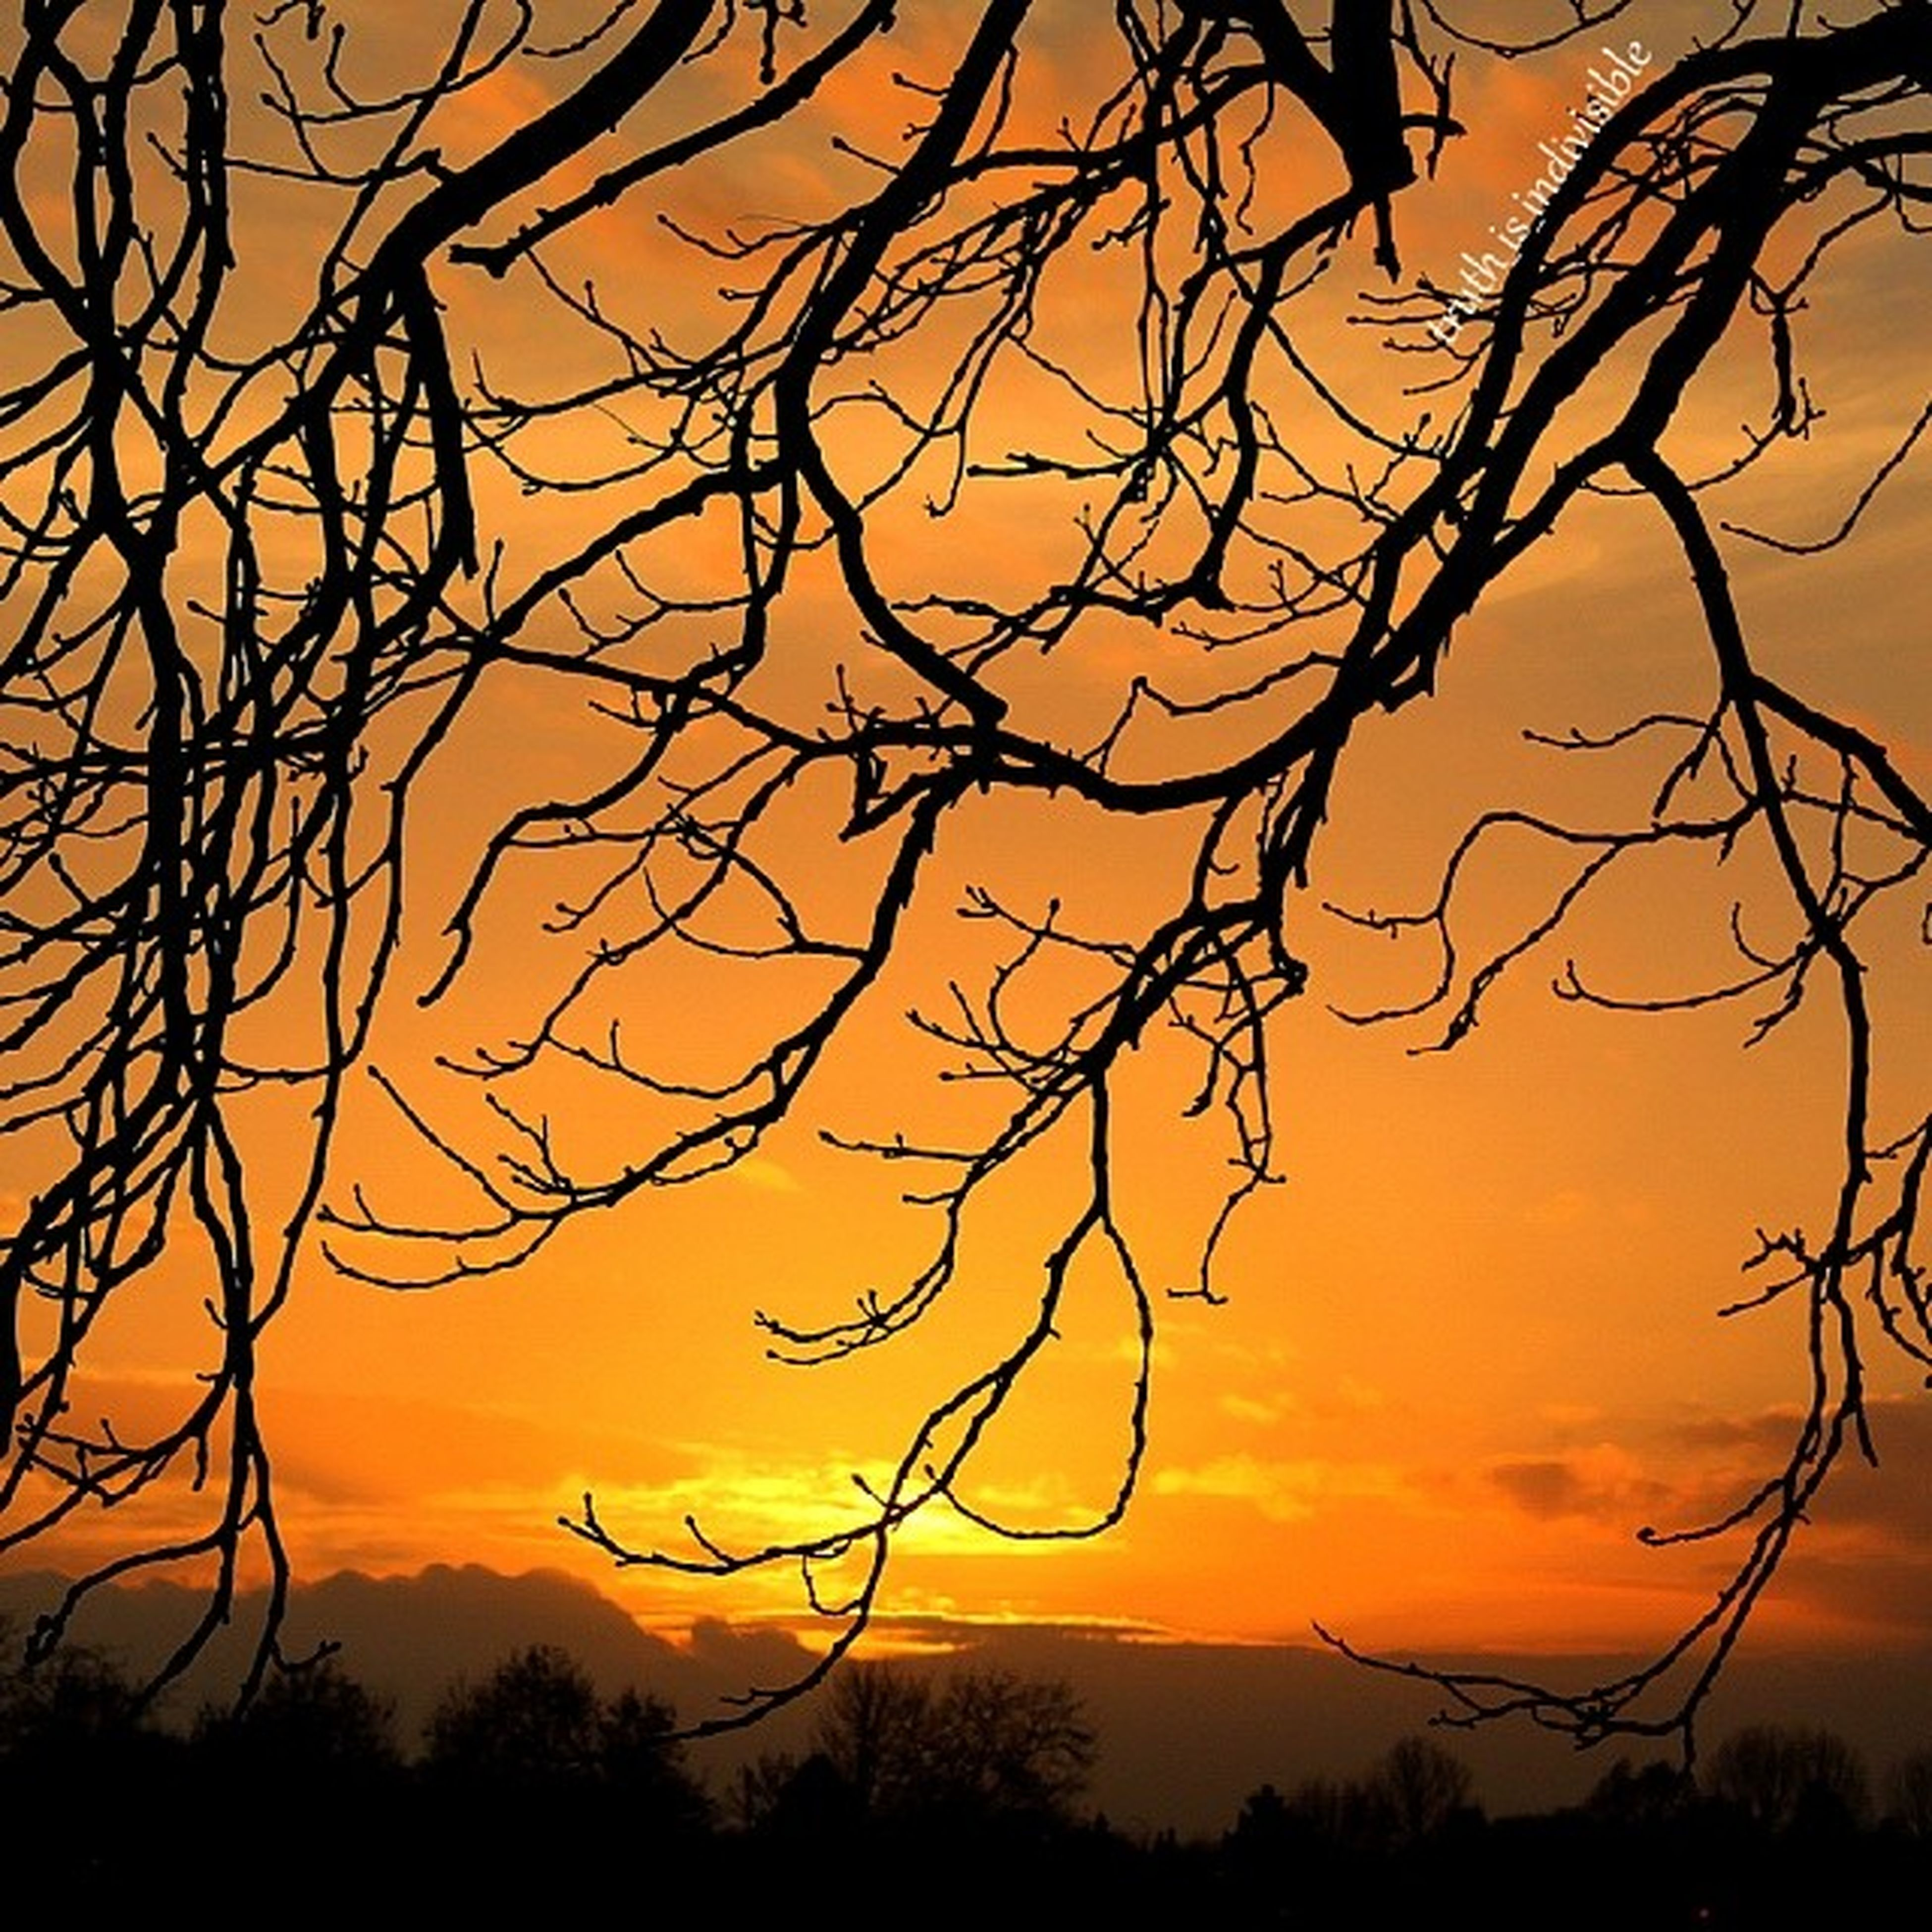 sunset, silhouette, bare tree, branch, orange color, tree, tranquility, scenics, beauty in nature, sky, tranquil scene, nature, idyllic, dramatic sky, low angle view, majestic, cloud - sky, outdoors, dusk, no people